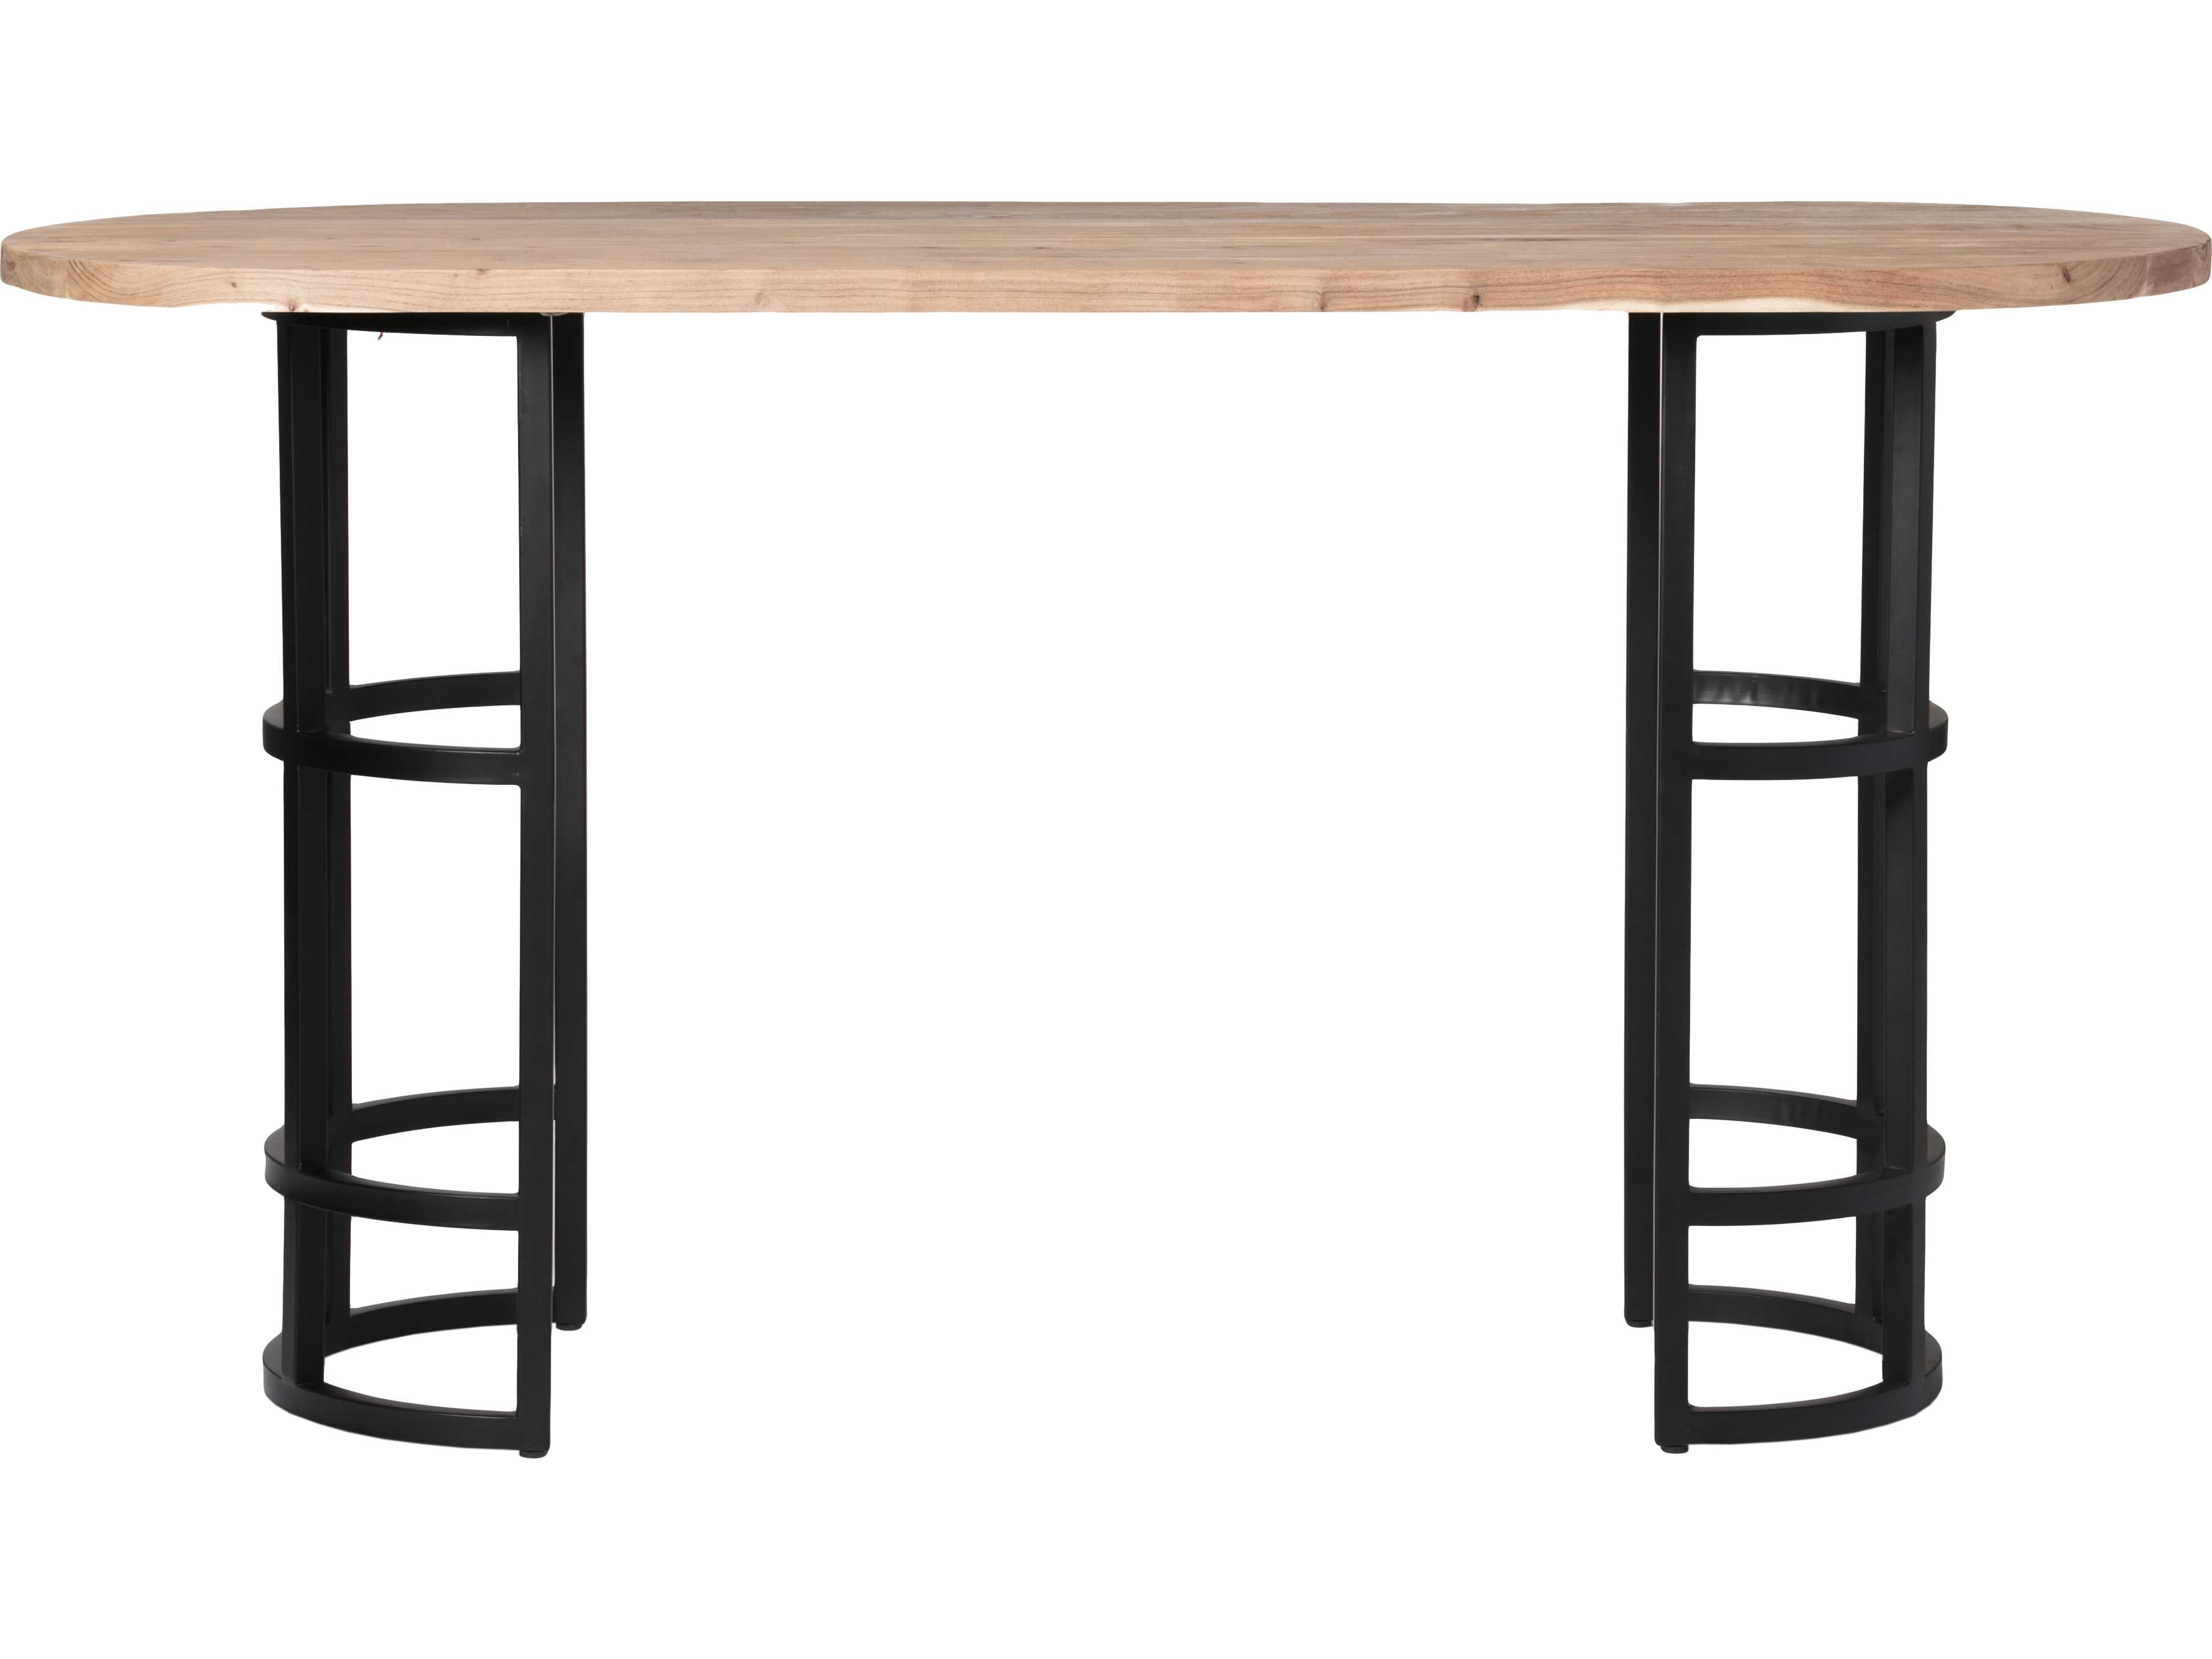 Dining Table Light Height: Moe's Home Collection Race 78'' X 28'' Oval Light Brown